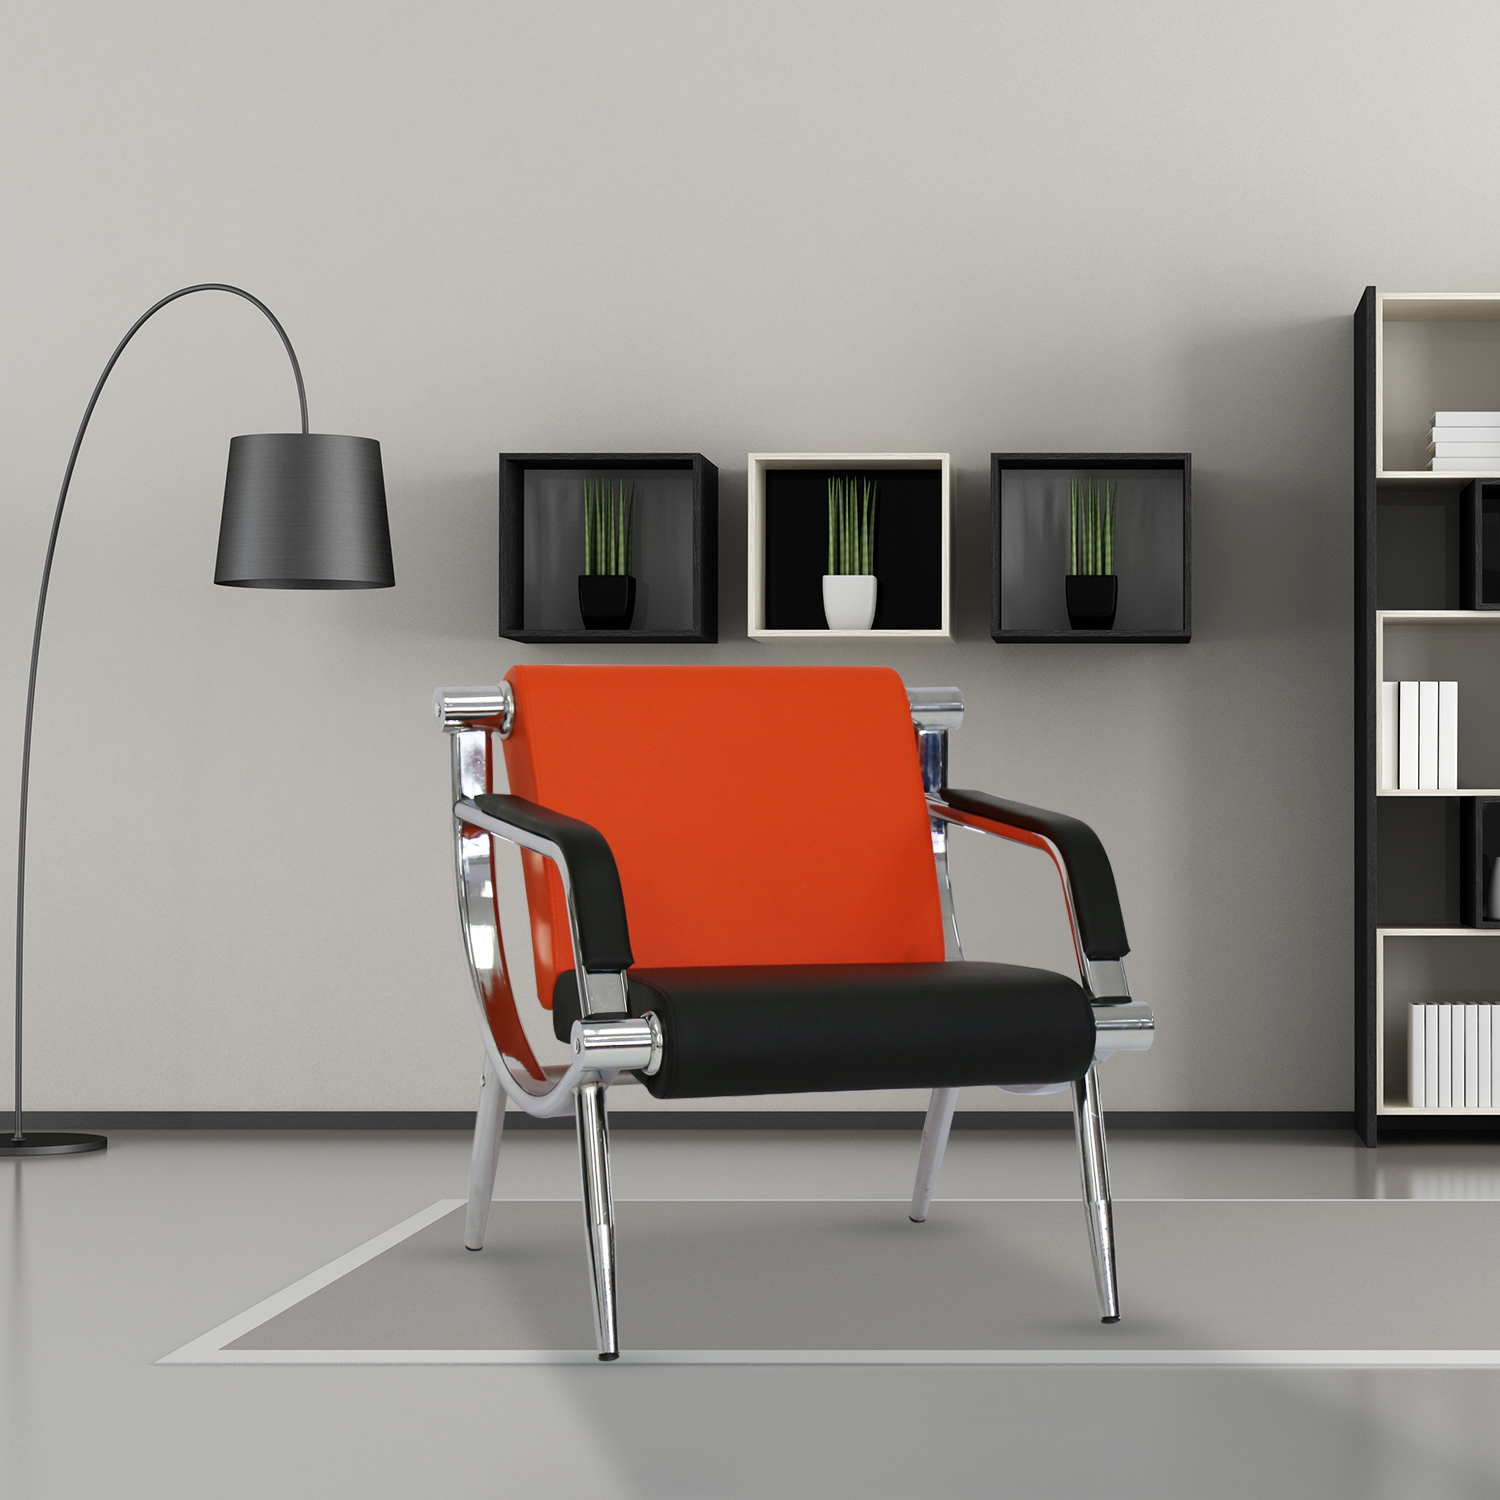 Kinbor Furniture Orange Leather Executive Side Reception Chair Office Waiting Room Guest Reception